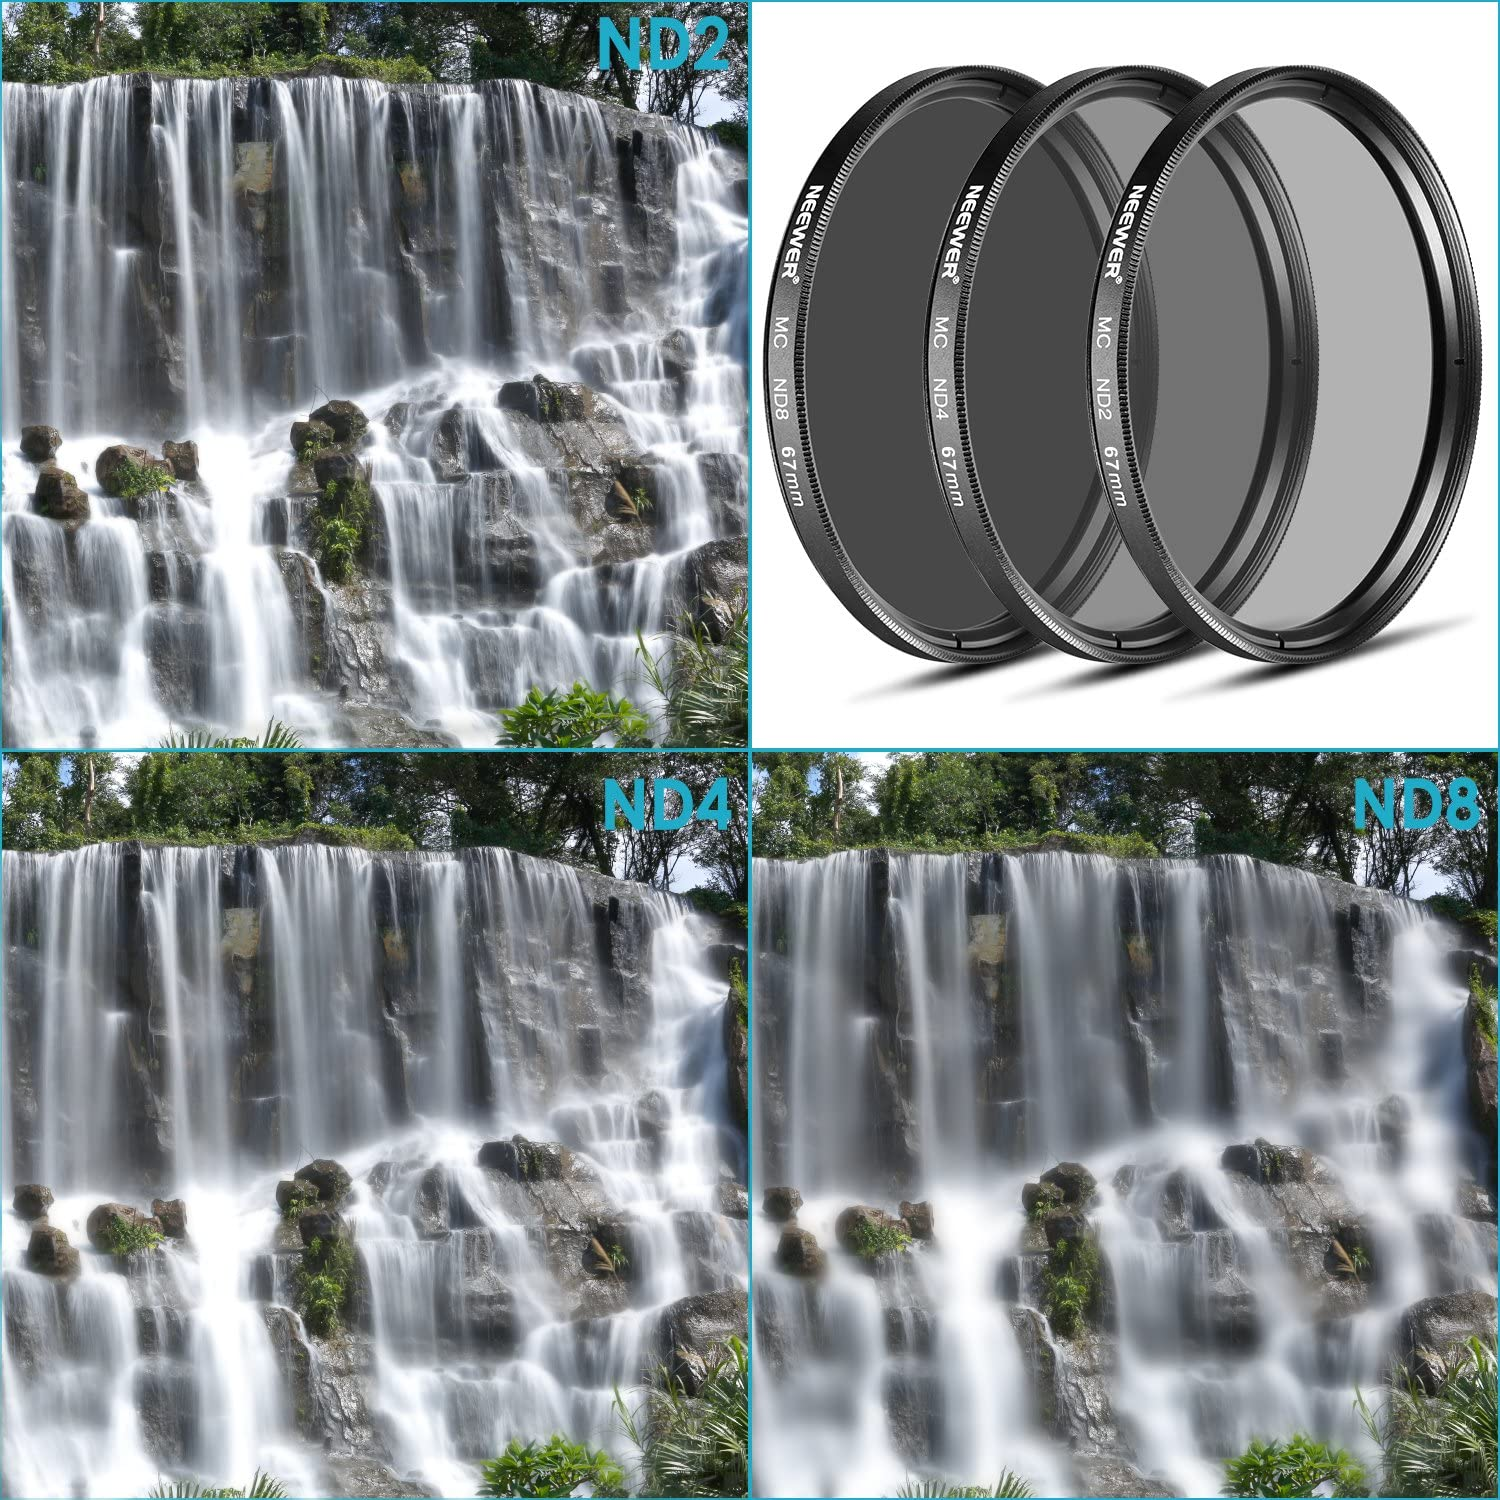 for Olympus PEN E-PL2 E-PL3 E-PL5 E-PL6,OM-D E-M10 Compact Cameras w//14-42mm f//3.5-5.6 II Zoom Lens Neewer 37MM ND Filter Set ND2 ND4 ND8